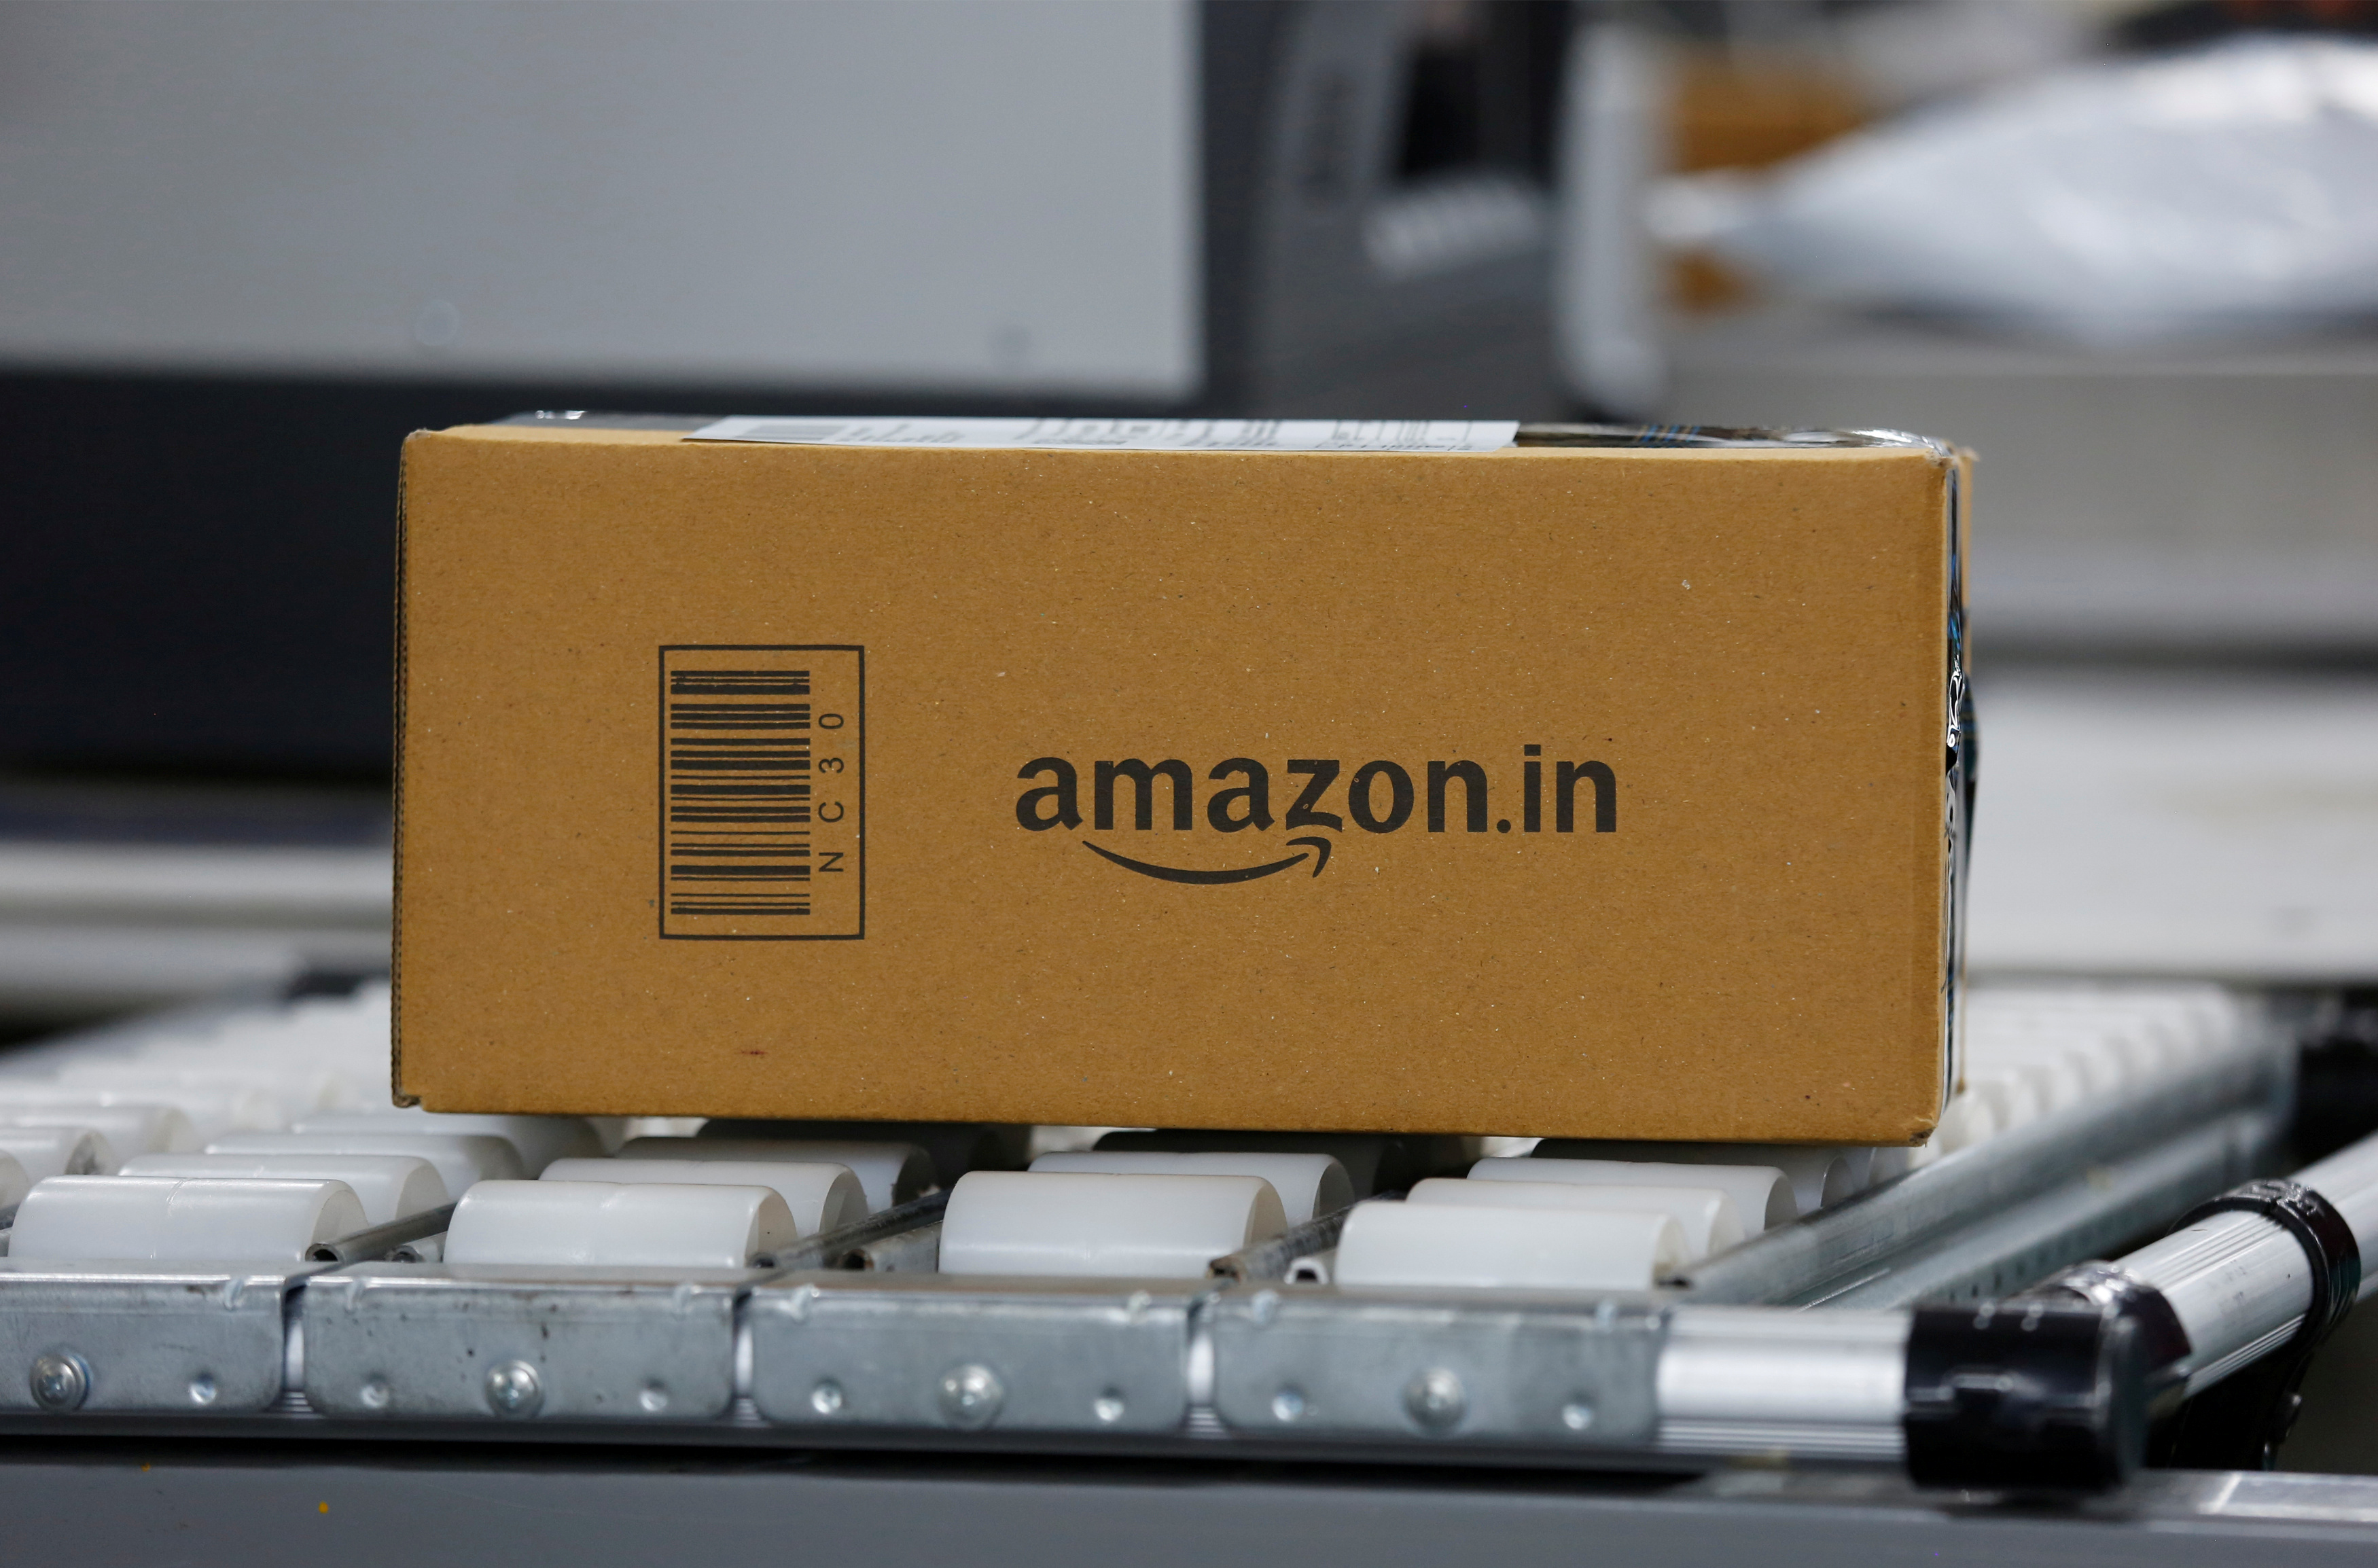 Amazon India plans to scrap single-use plastic, joins rival